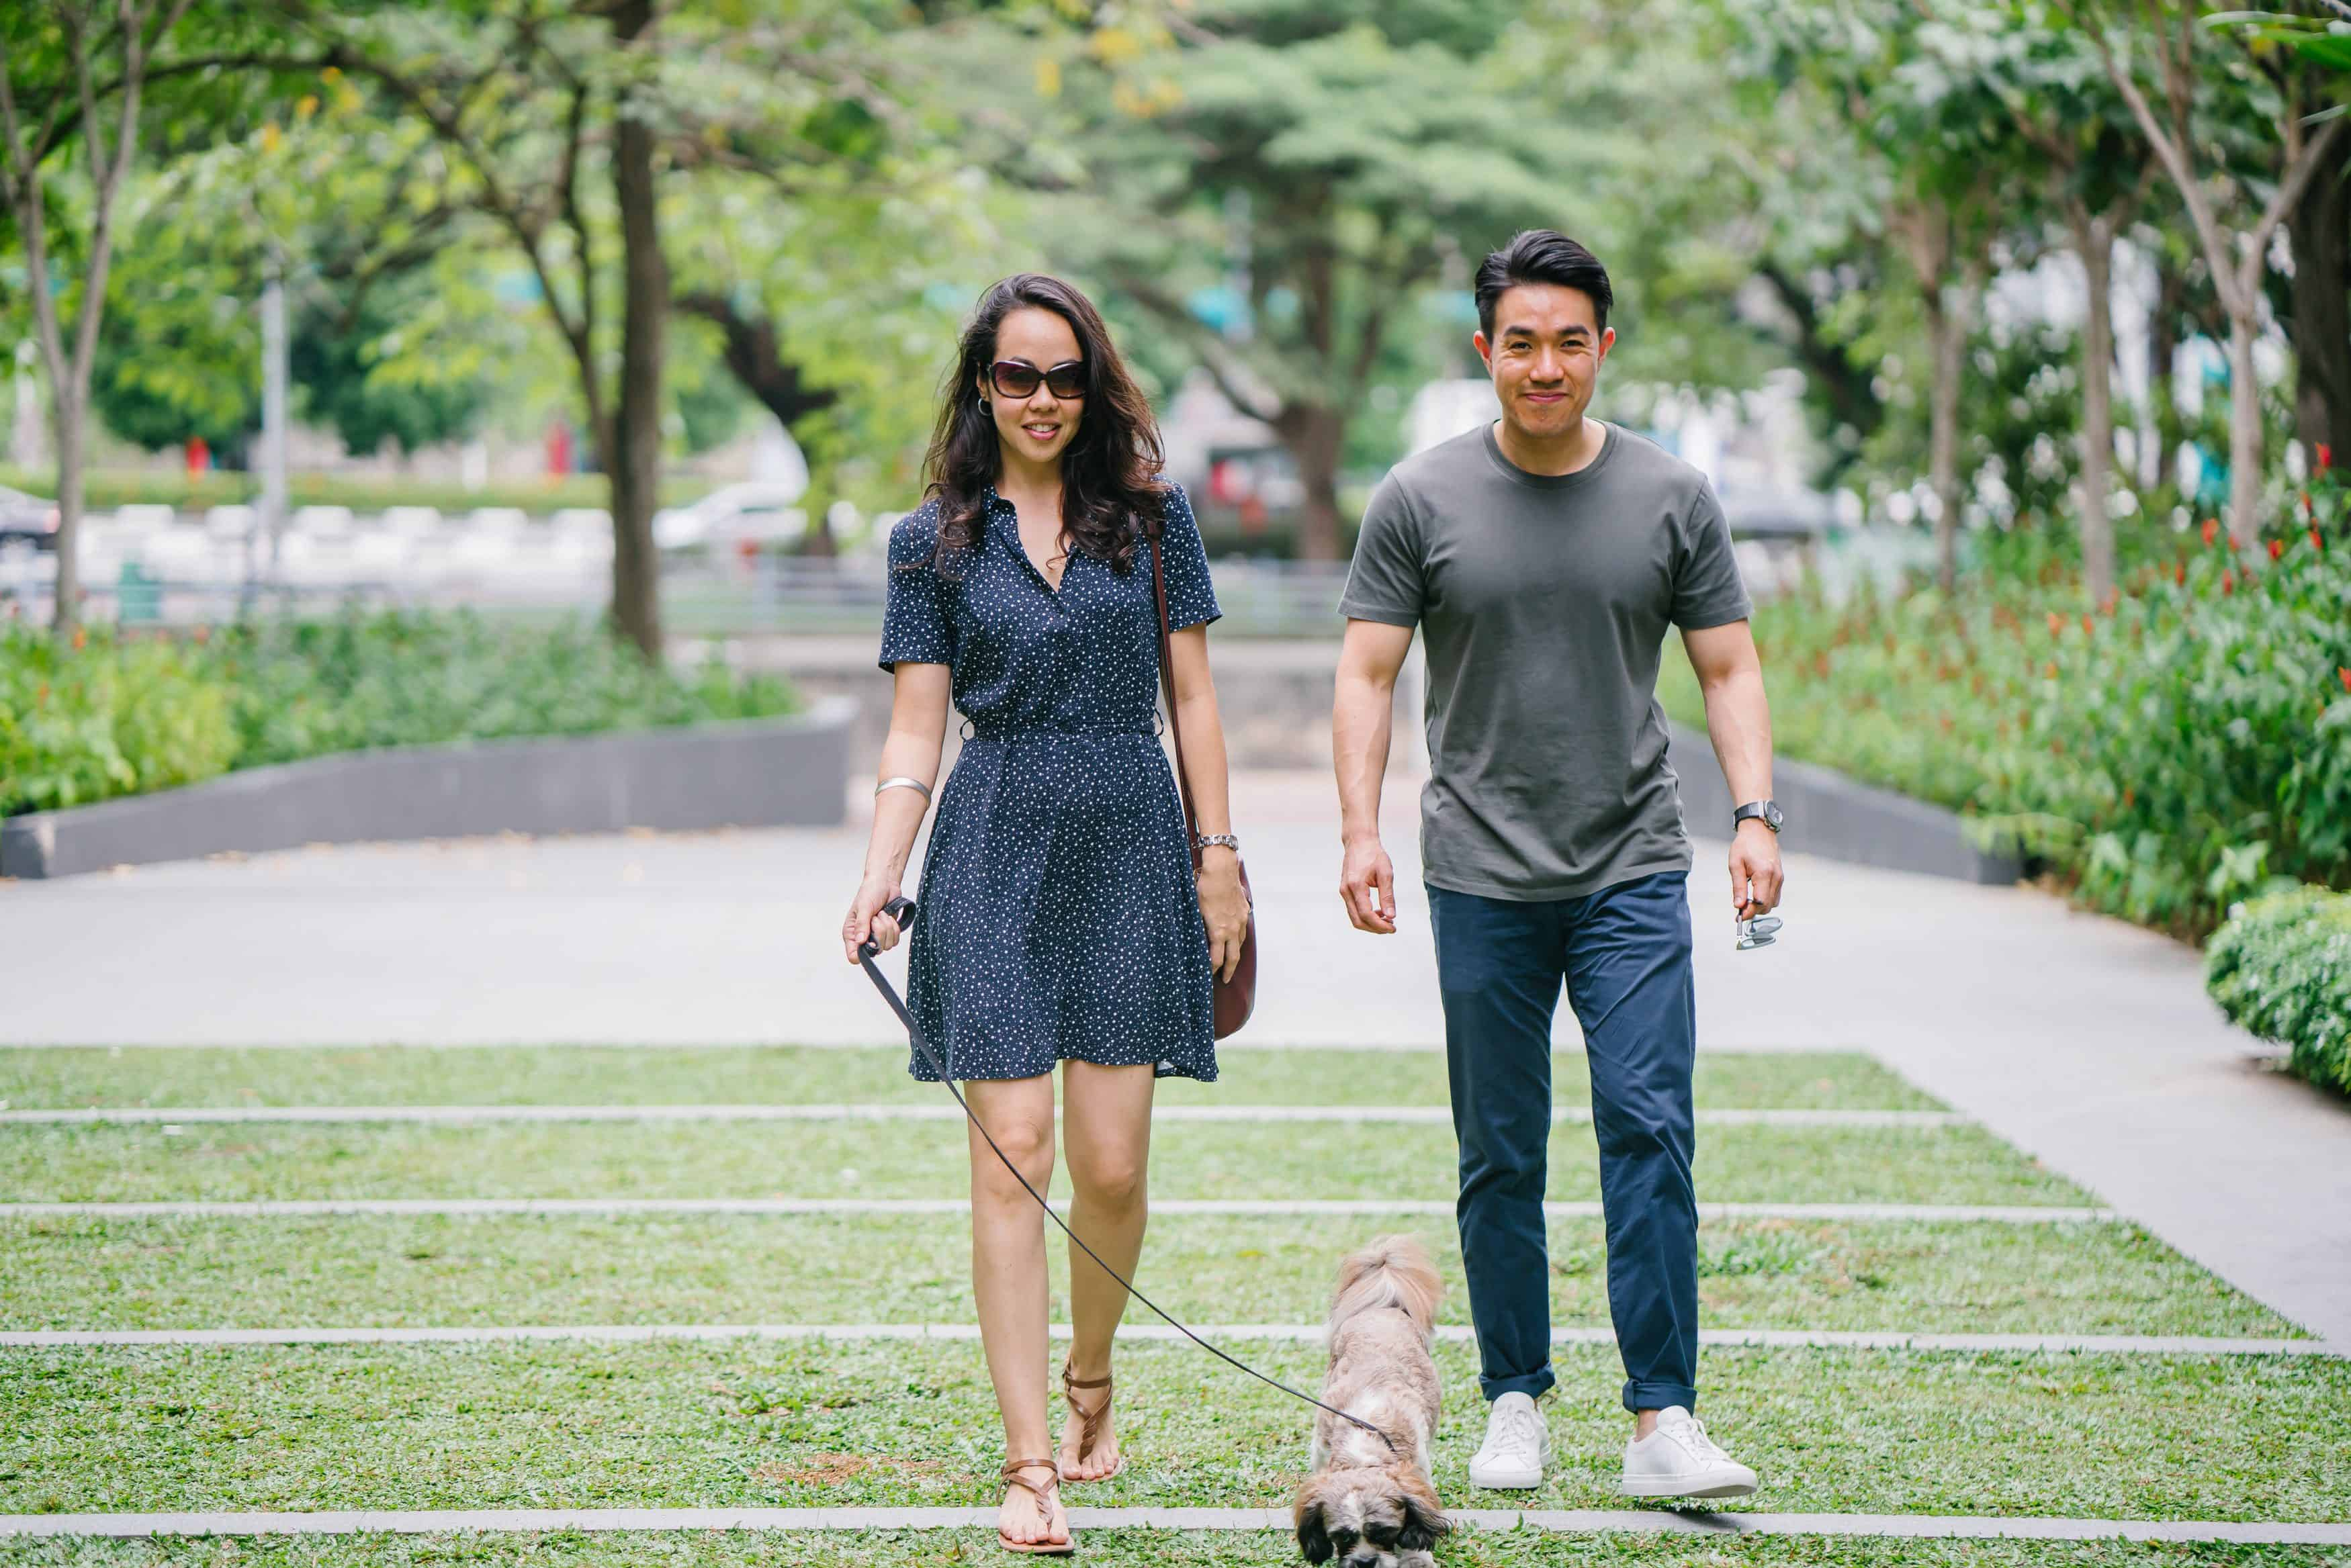 Asian couple on a date walking their pet dog